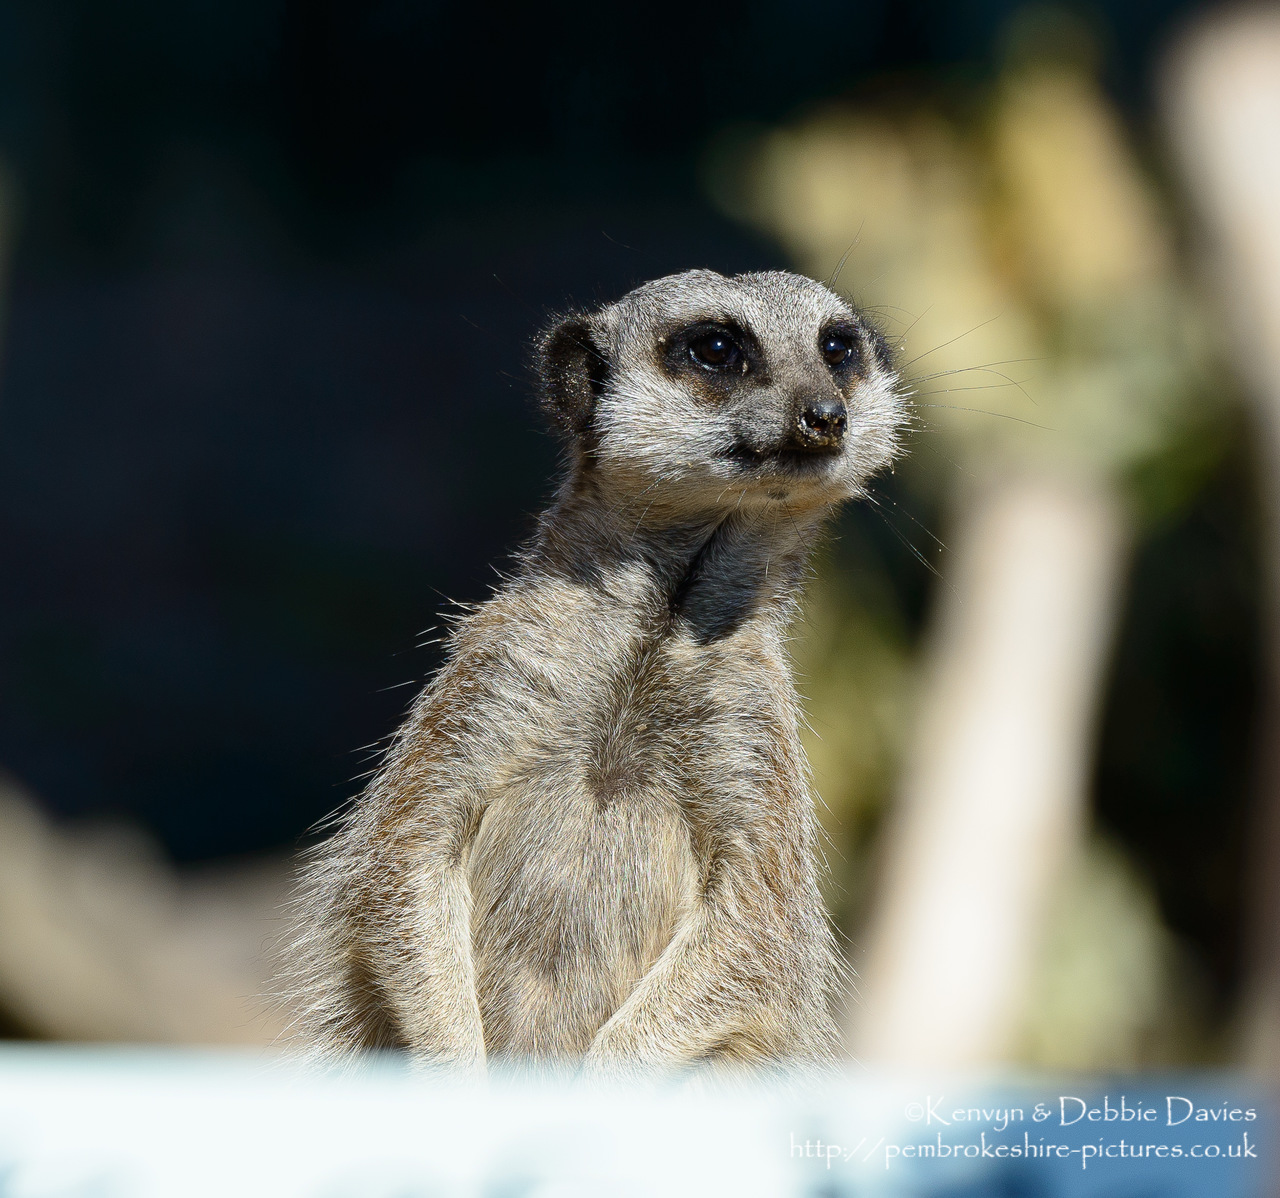 Taken at Manor House Wildlife Park near Tenby, Pembrokeshire